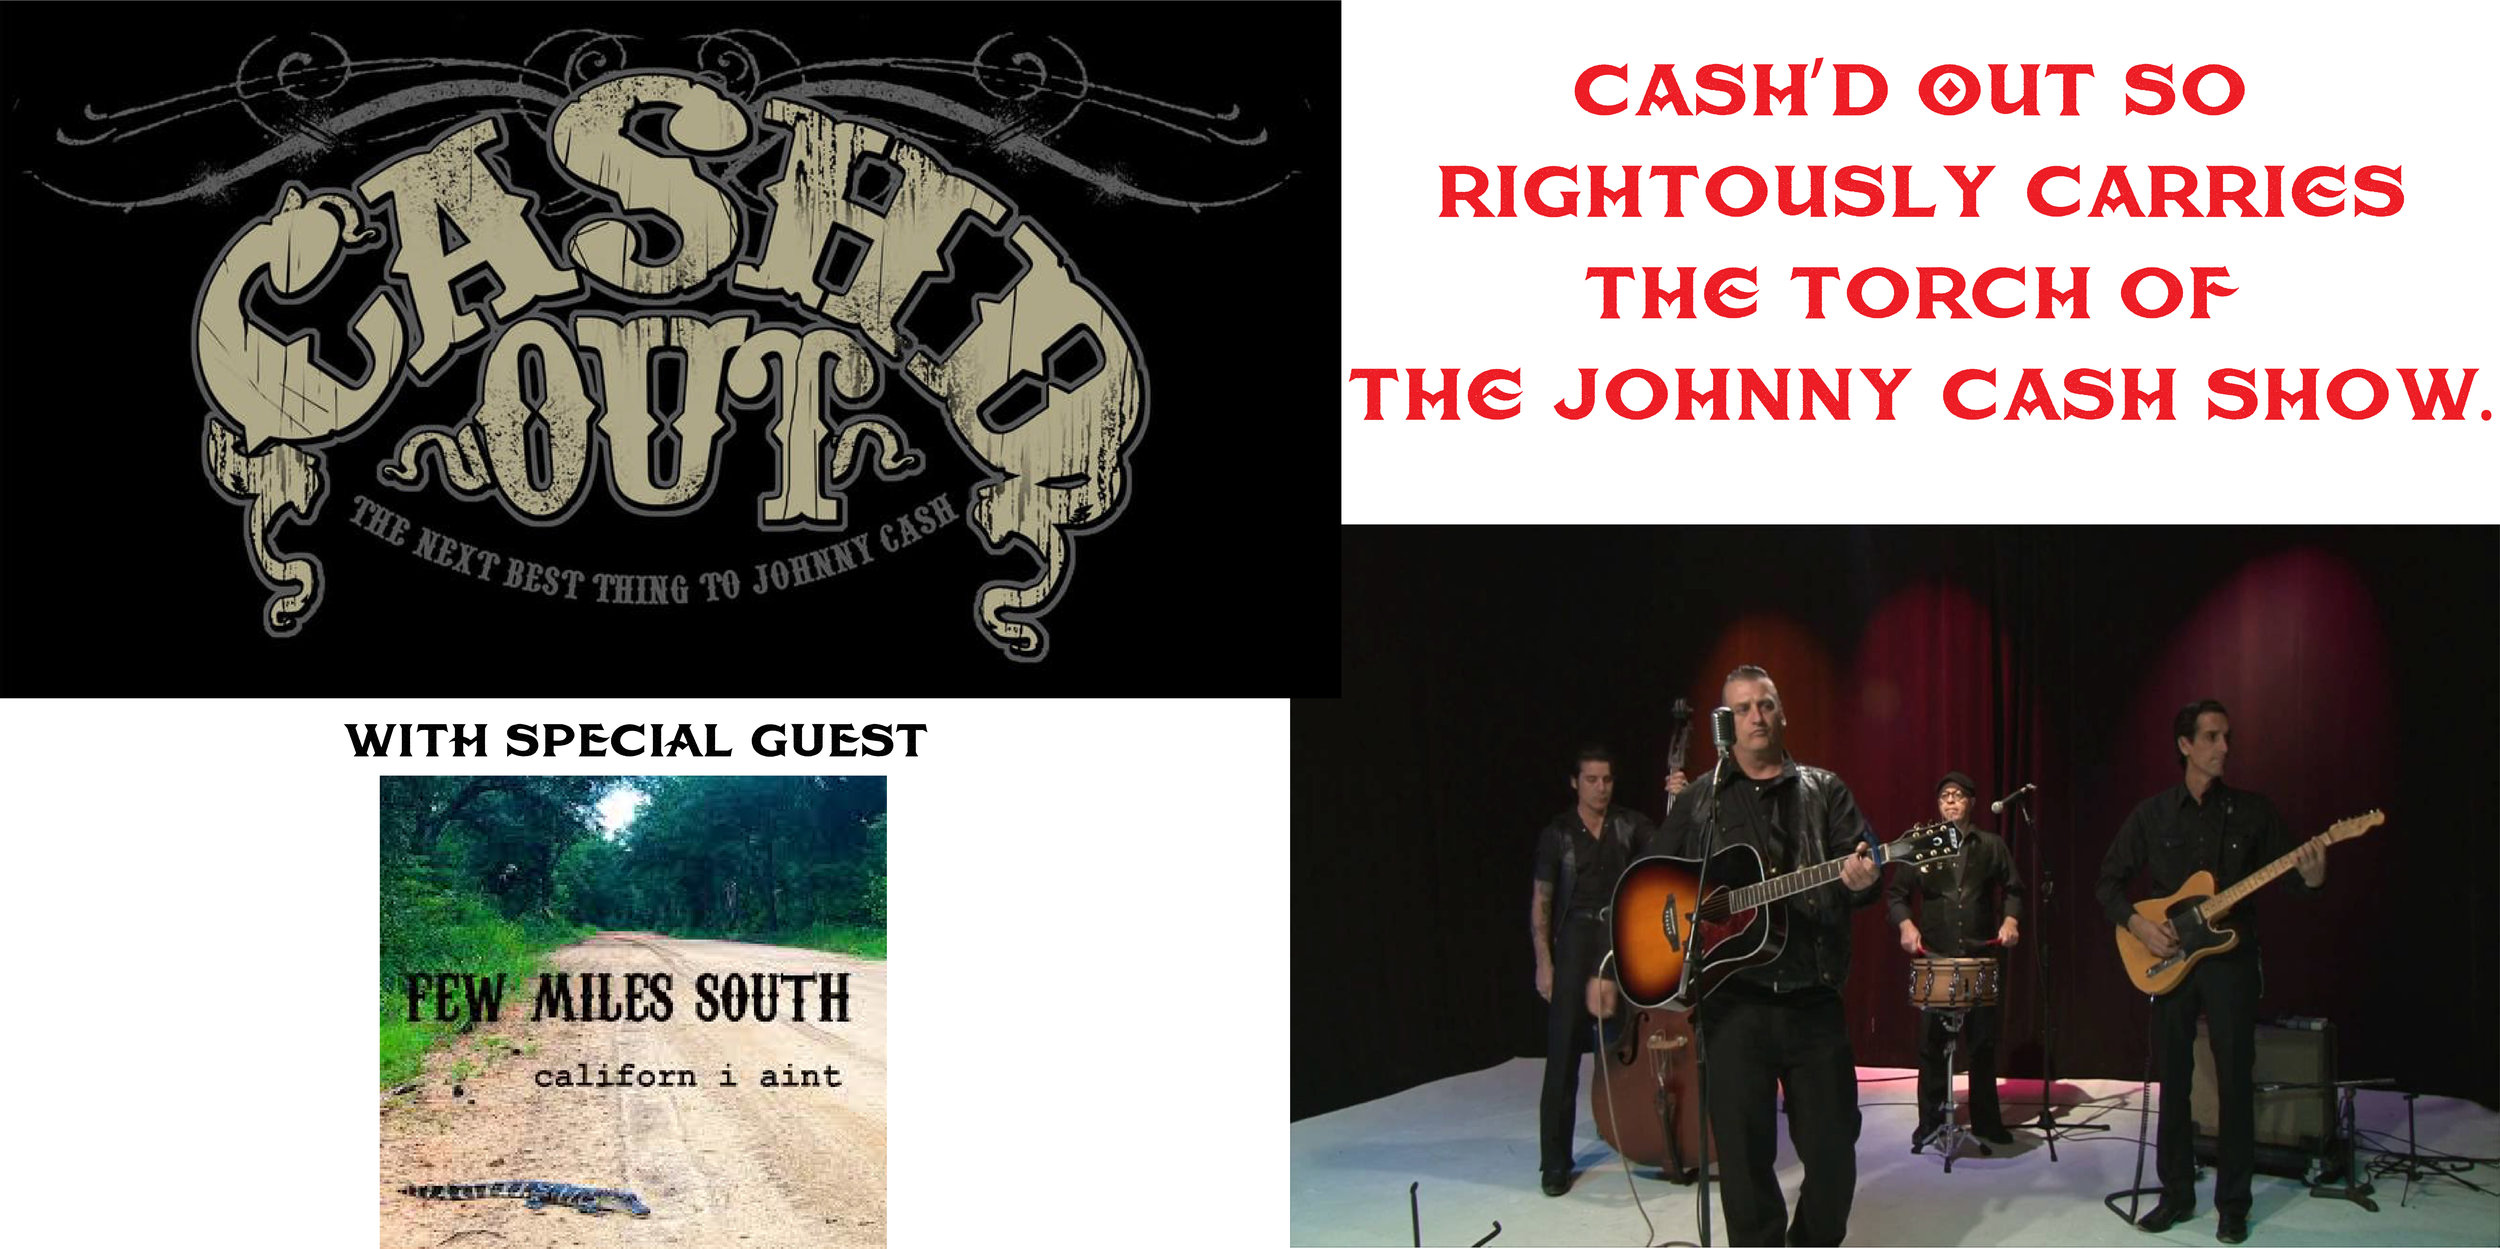 DON'T MISS A CHANCE TO SEE THIS SHOW! Cash'd Out is THE Premier Johnny Cash Show and it hit's the Warehouse Stage JULY 27 with special guests FEW MILES SOUTH! Tickets go on sale 6/25 at 5:00